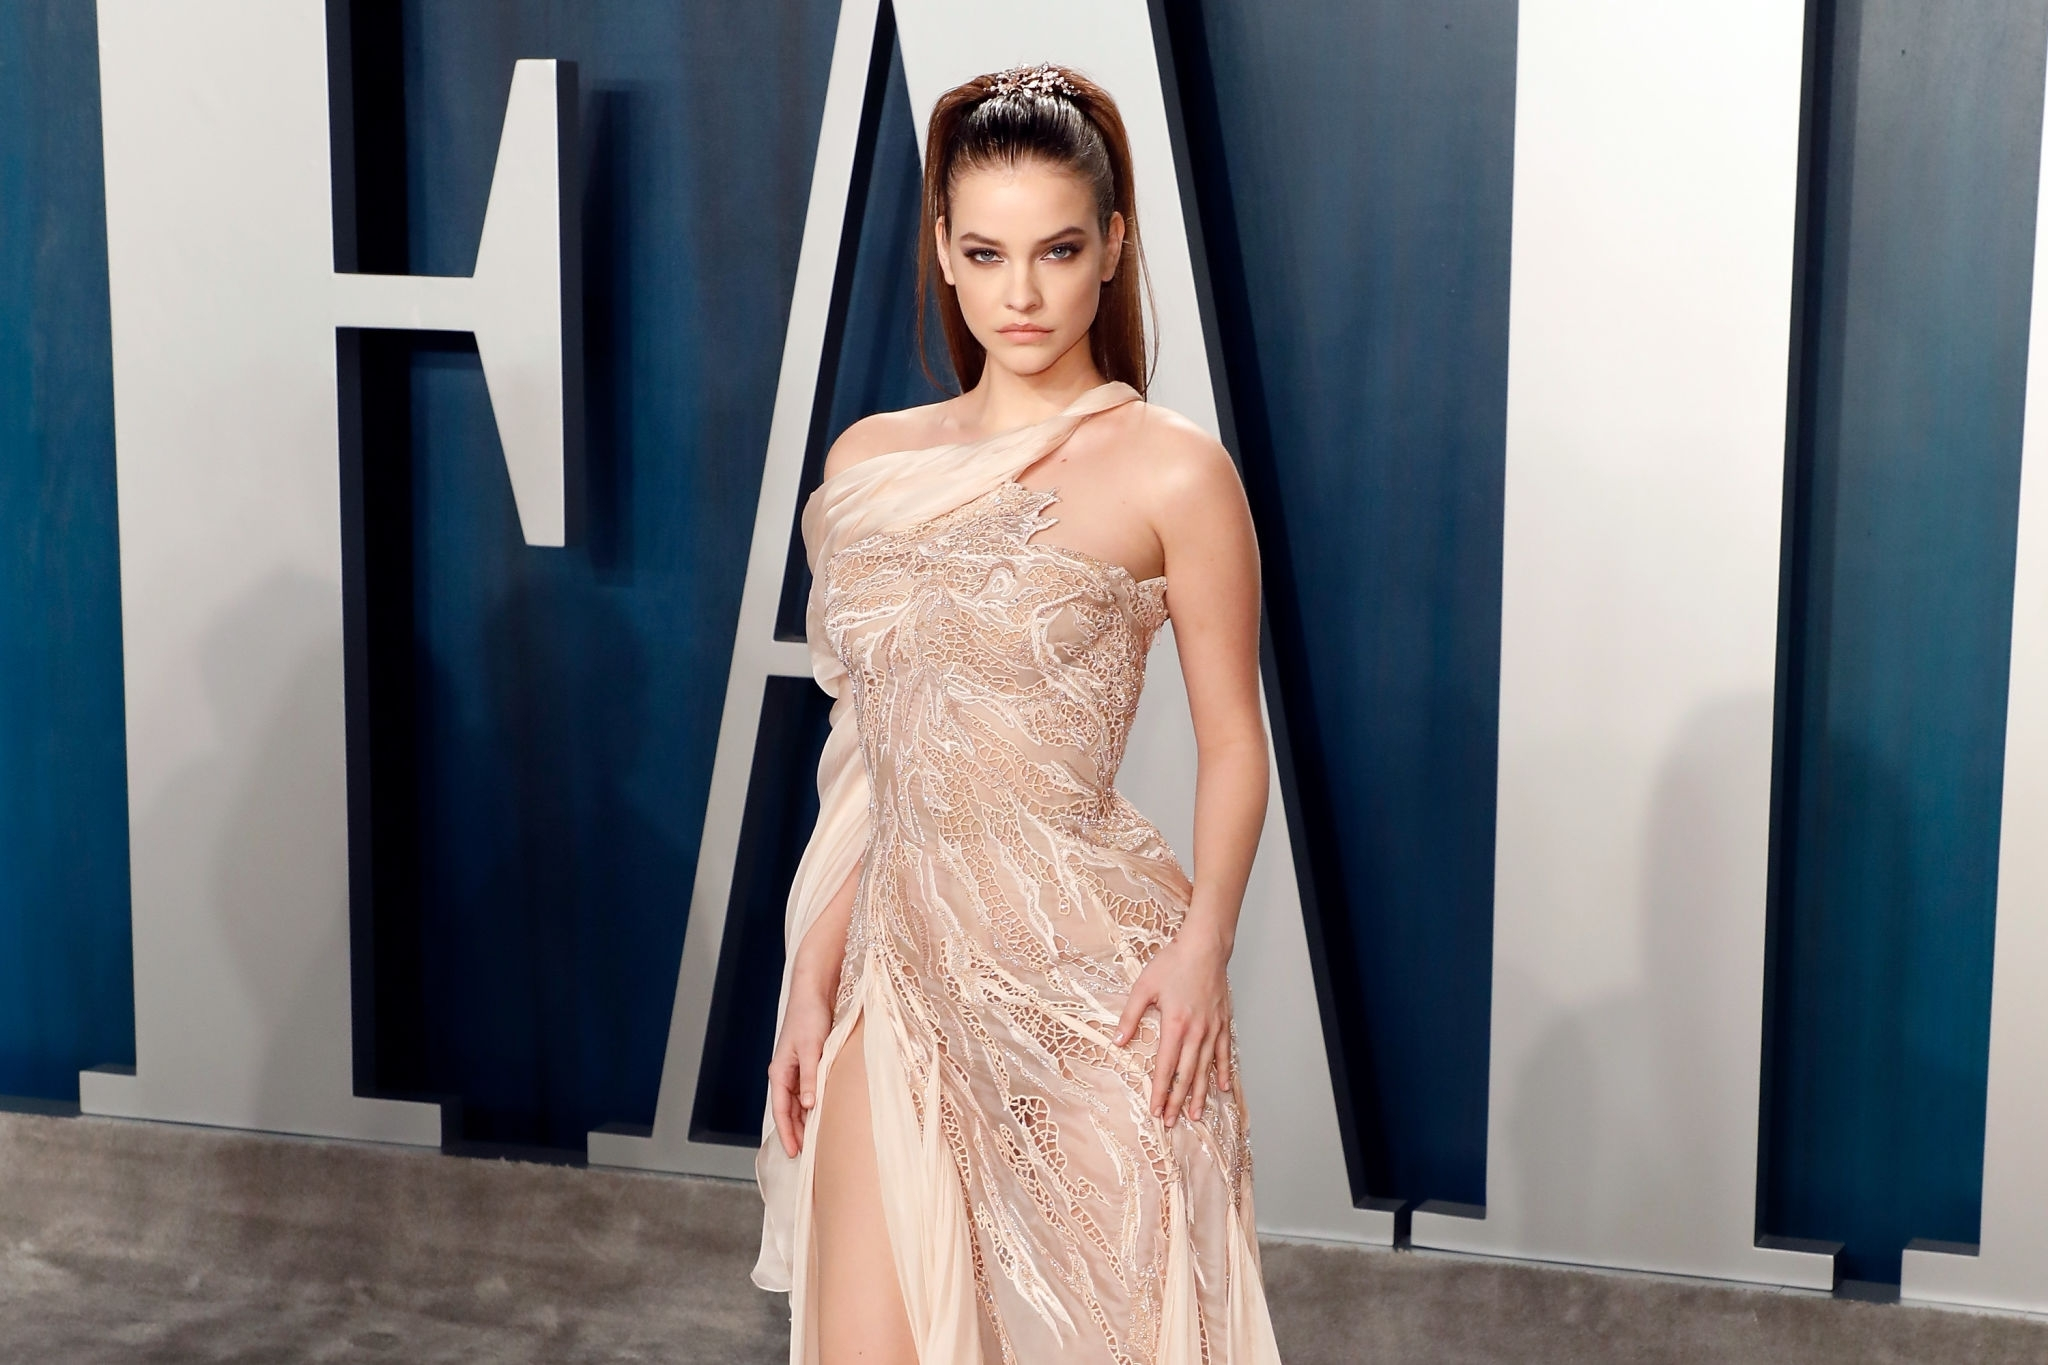 Barbara Palvin At Vanity Fair Oscar After Party 2020 Stylectory